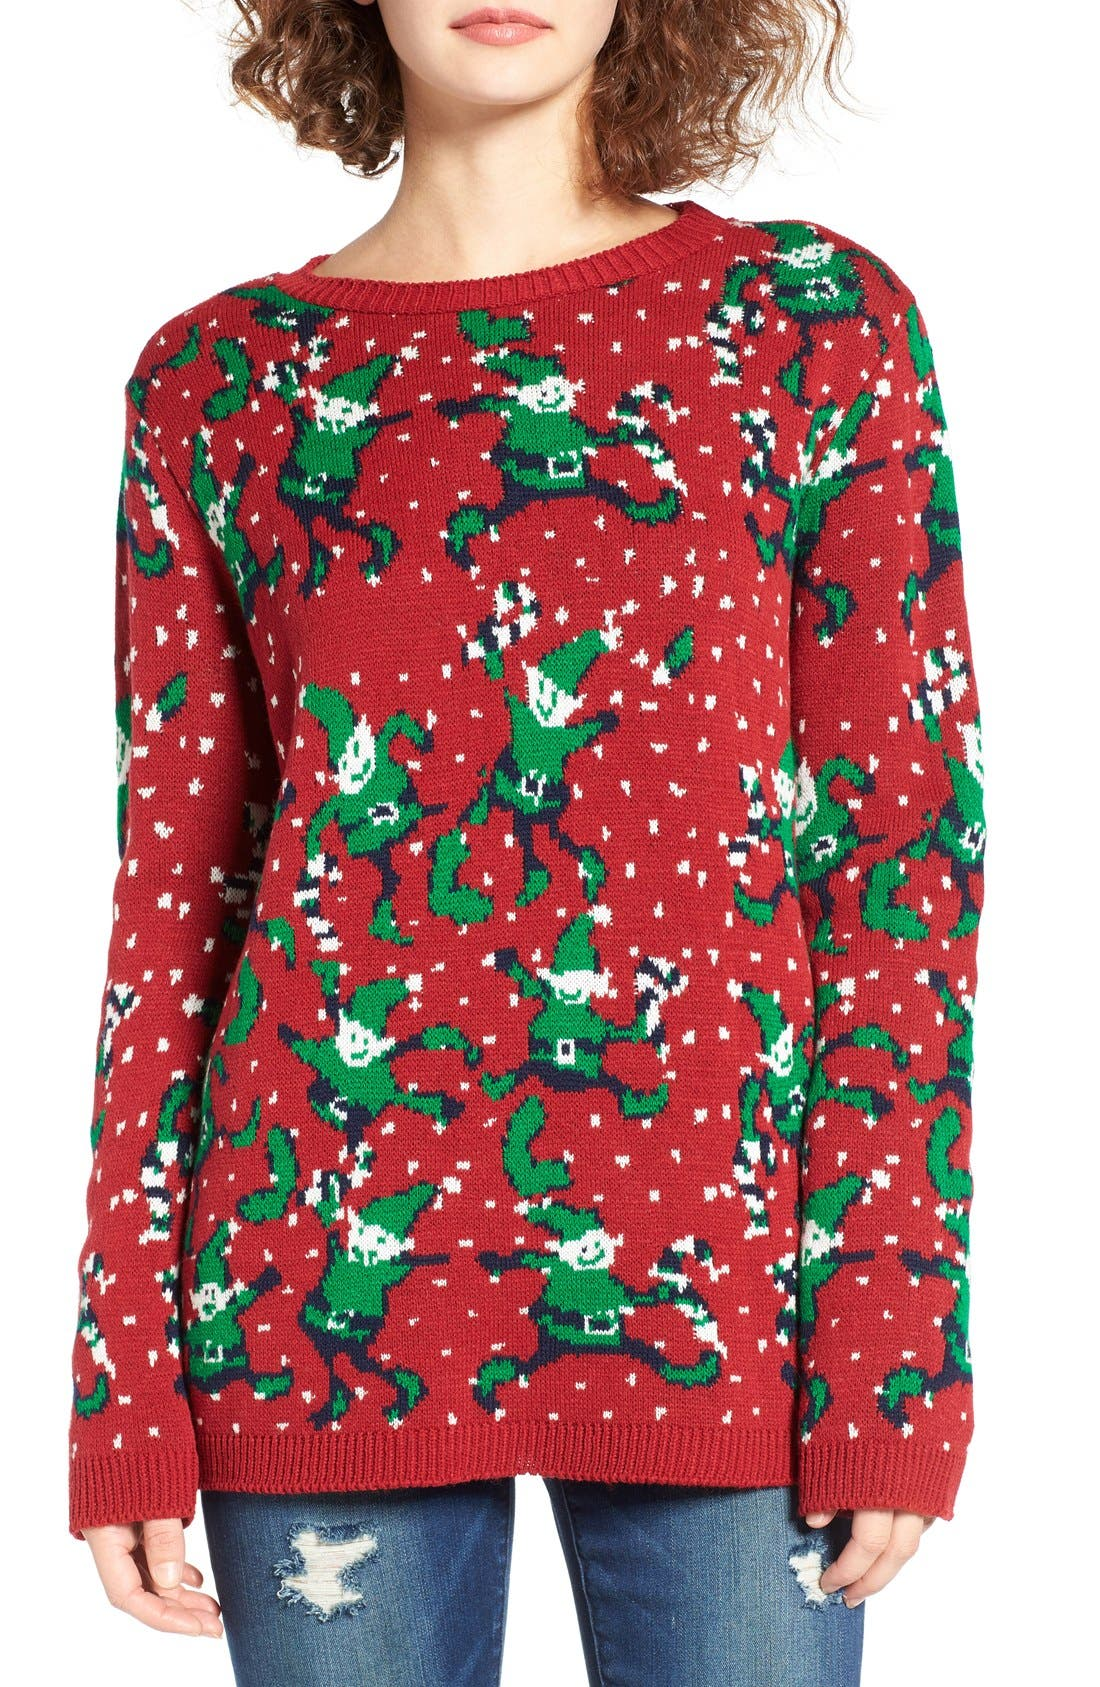 Alternate Image 1 Selected - Cotton Emporium Intarsia Elf Sweater